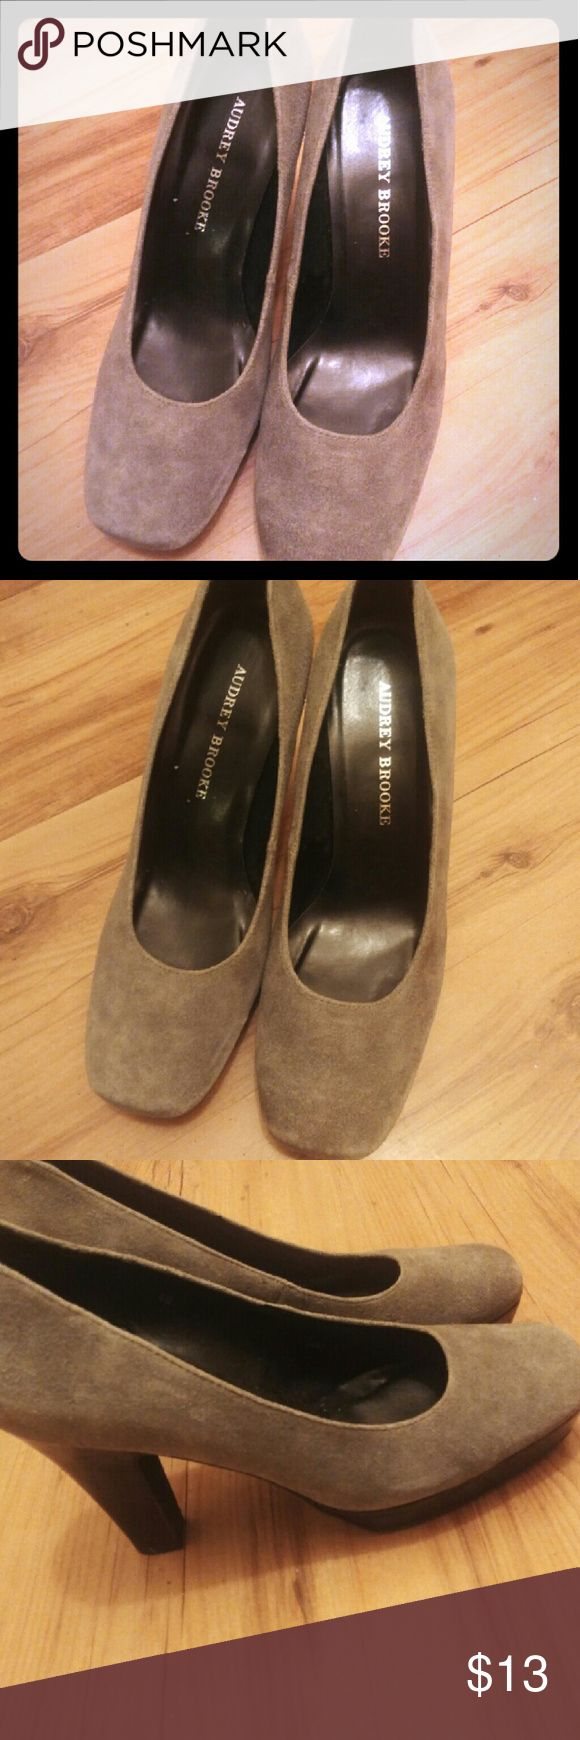 "Like New Gray Suede Heels by Aubrey Brooks Like New Gray Suede Heels by Aubrey Brooks.  Size 8, with a closed square toe and 3"" Heel height.  All reasonable offers are considered and appreciated. Aubrey Brooks Shoes Heels"